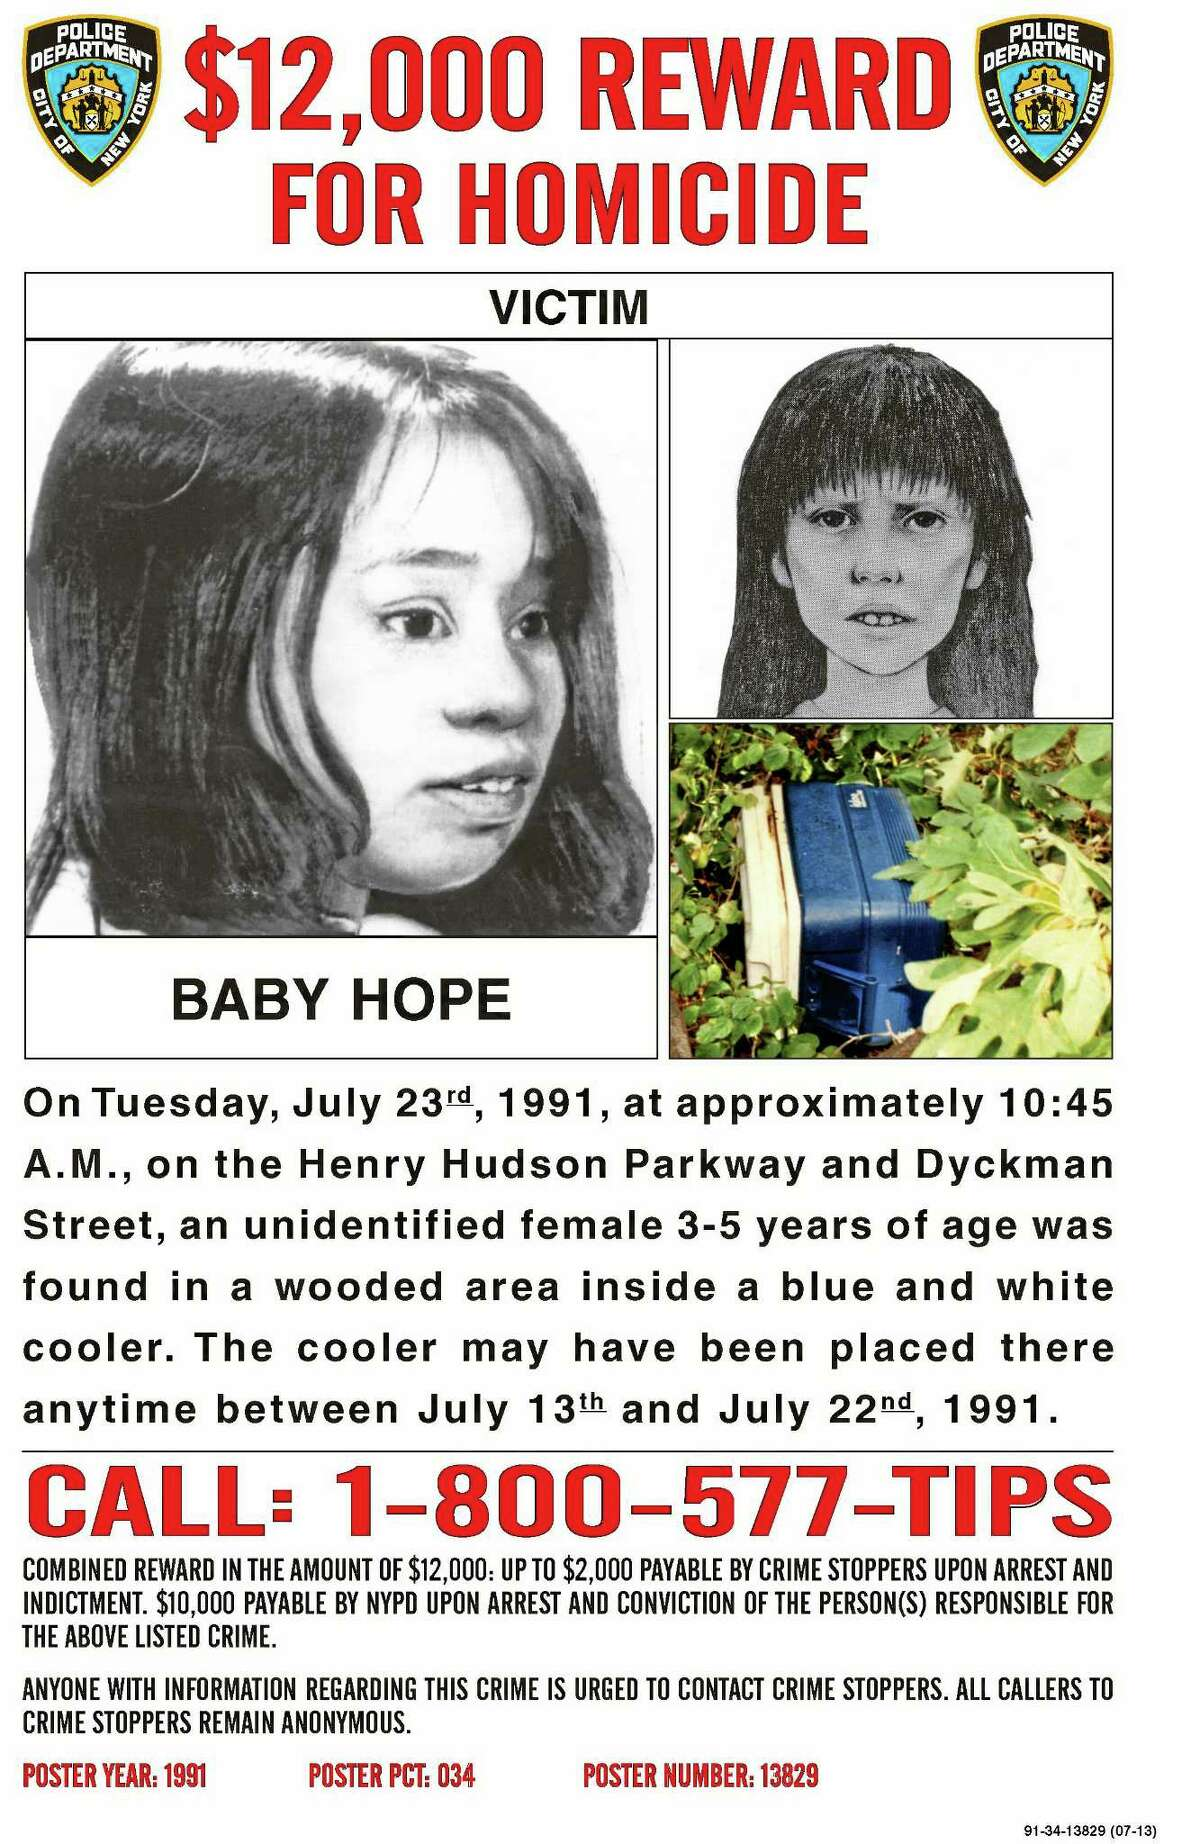 """This undated image of a poster provided by the New York City Police Department seeks help identifying the victim dubbed """"Baby Hope."""" On July 23, 2013, the 22nd anniversary of the discovery of the body of a young girl inside a cooler in Washington Heights, police offered a $12,000 reward for any information leading to an arrest and conviction in the unsolved crime. Officers put up posters in the neighborhood and handed out fliers with sketches of how the victim might have looked. (AP Photo/NYPD)"""